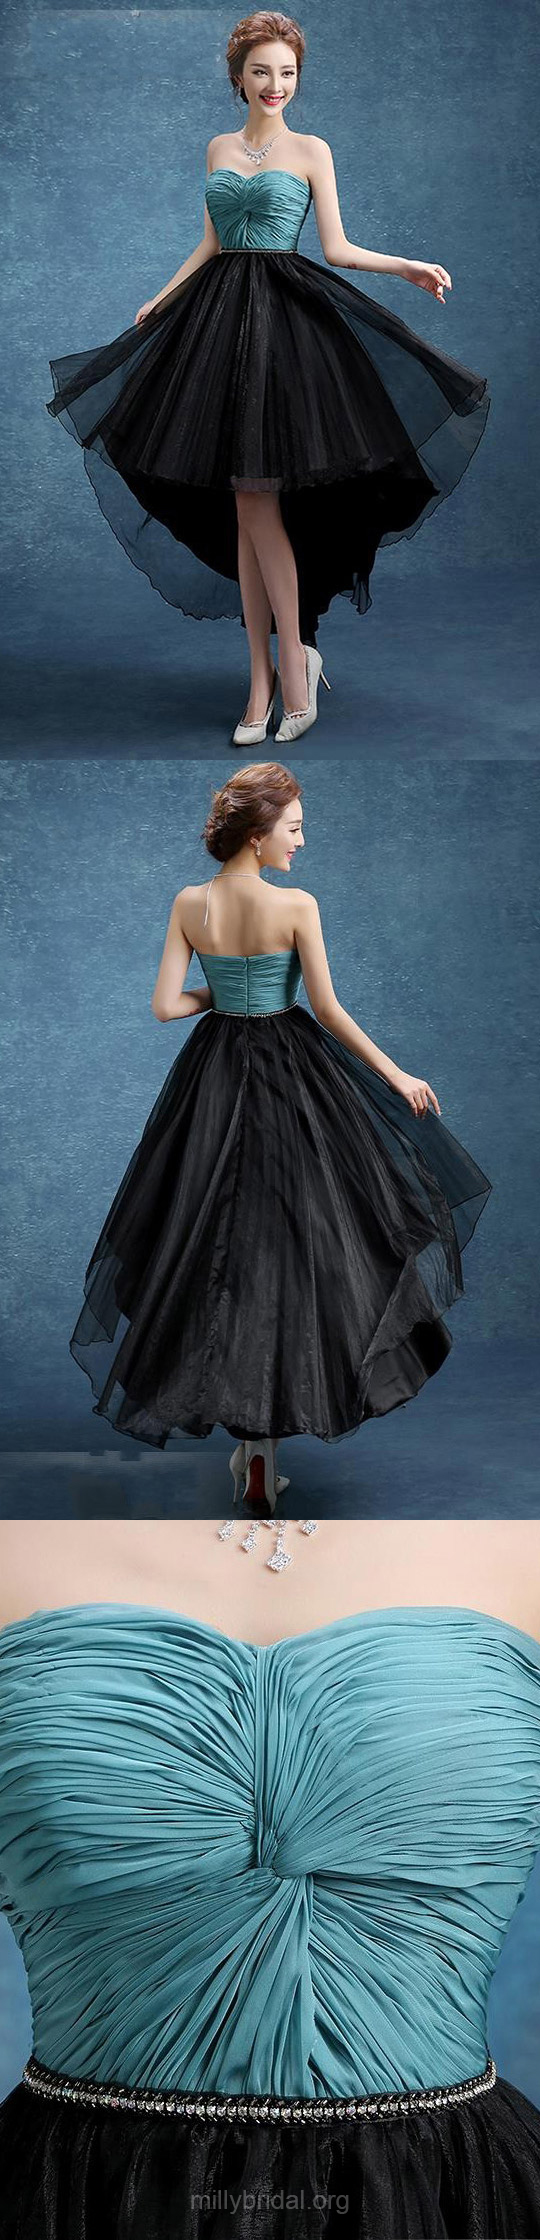 High Low Prom Dresses A-line, Sweetheart Party Dresses Black Chiffon ...